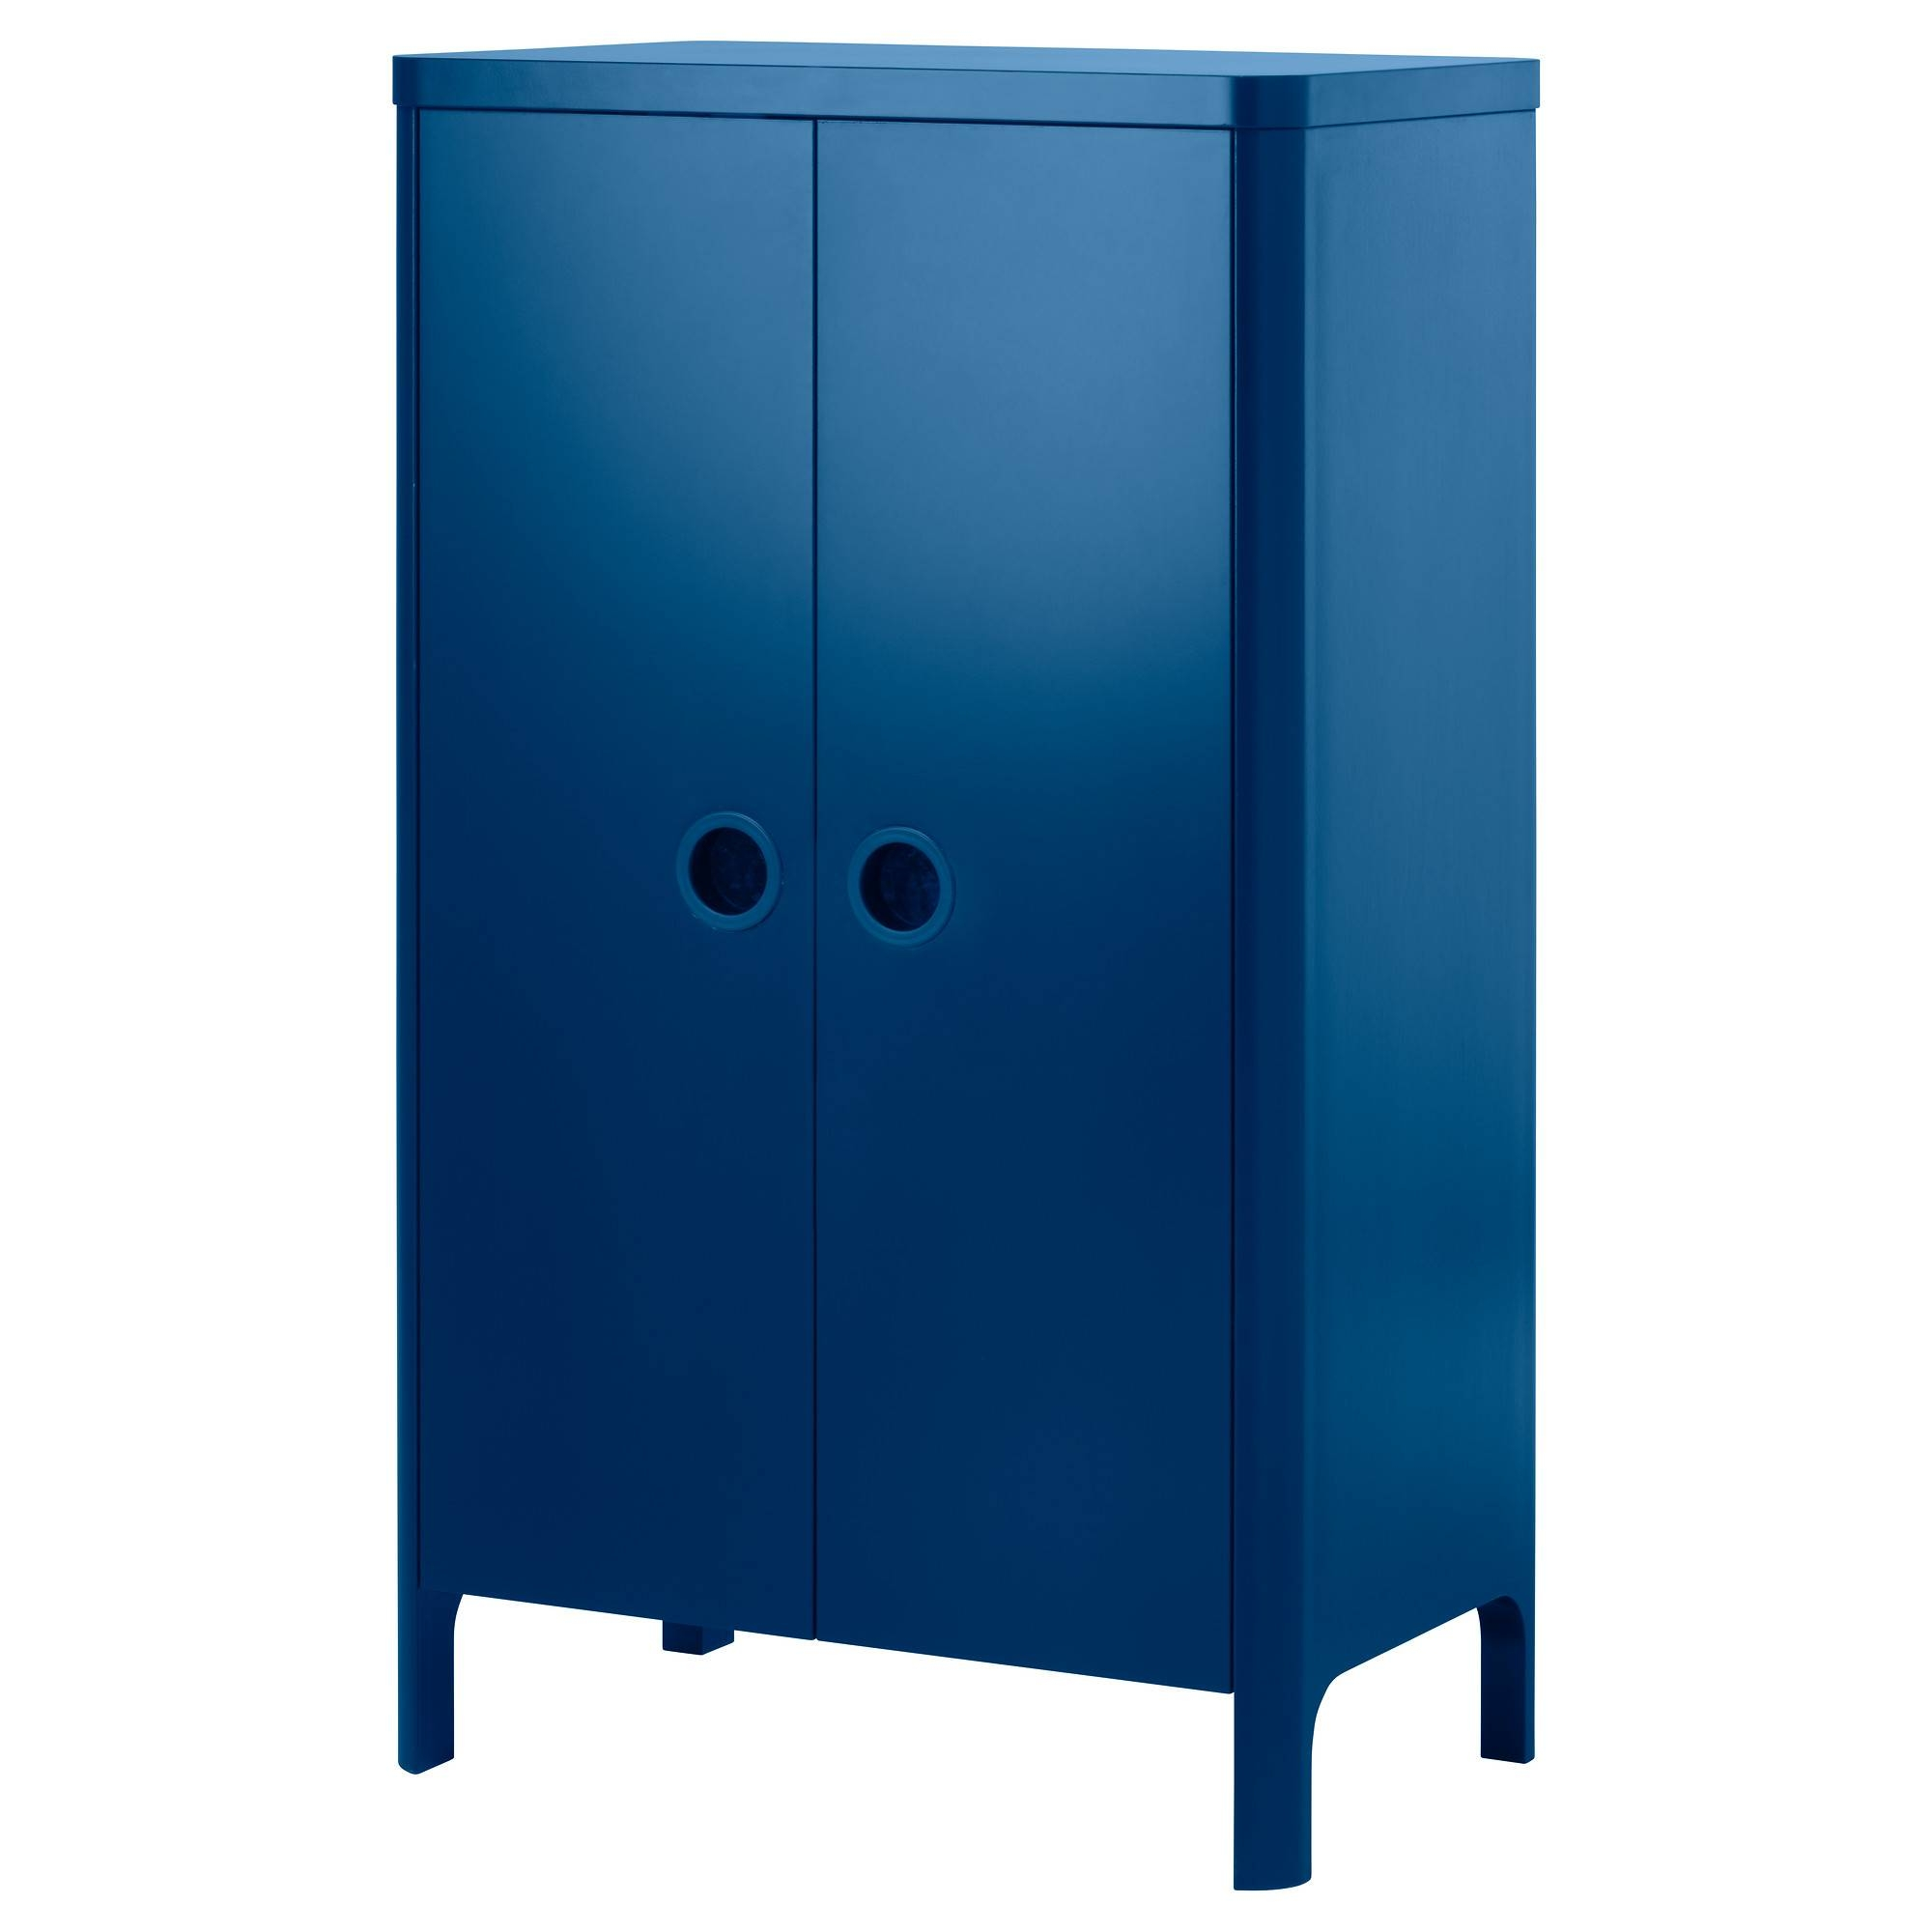 Children's Wardrobes - Nursery Wardrobes - Ikea pertaining to Childrens Tallboy Wardrobes (Image 4 of 15)